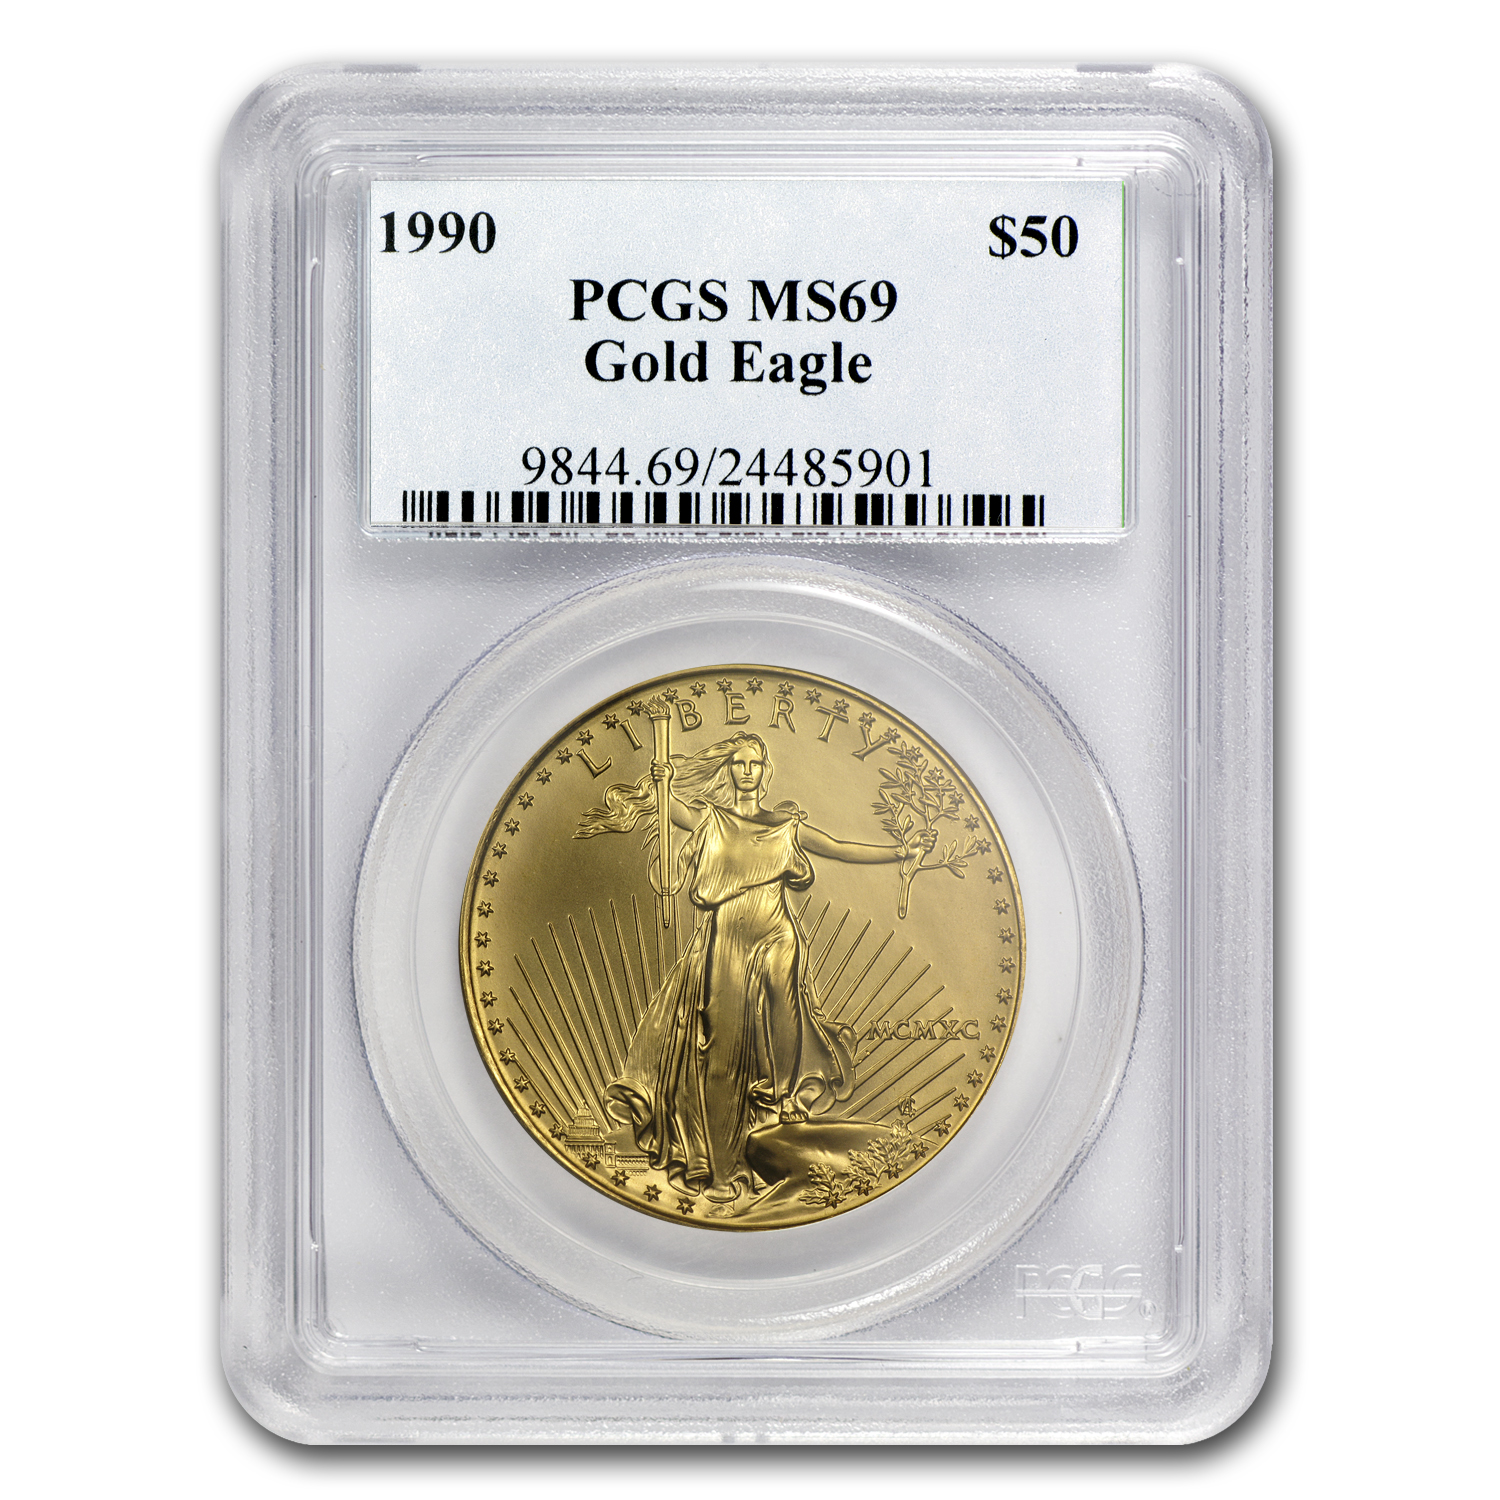 1990 1 oz Gold American Eagle MS-69 PCGS